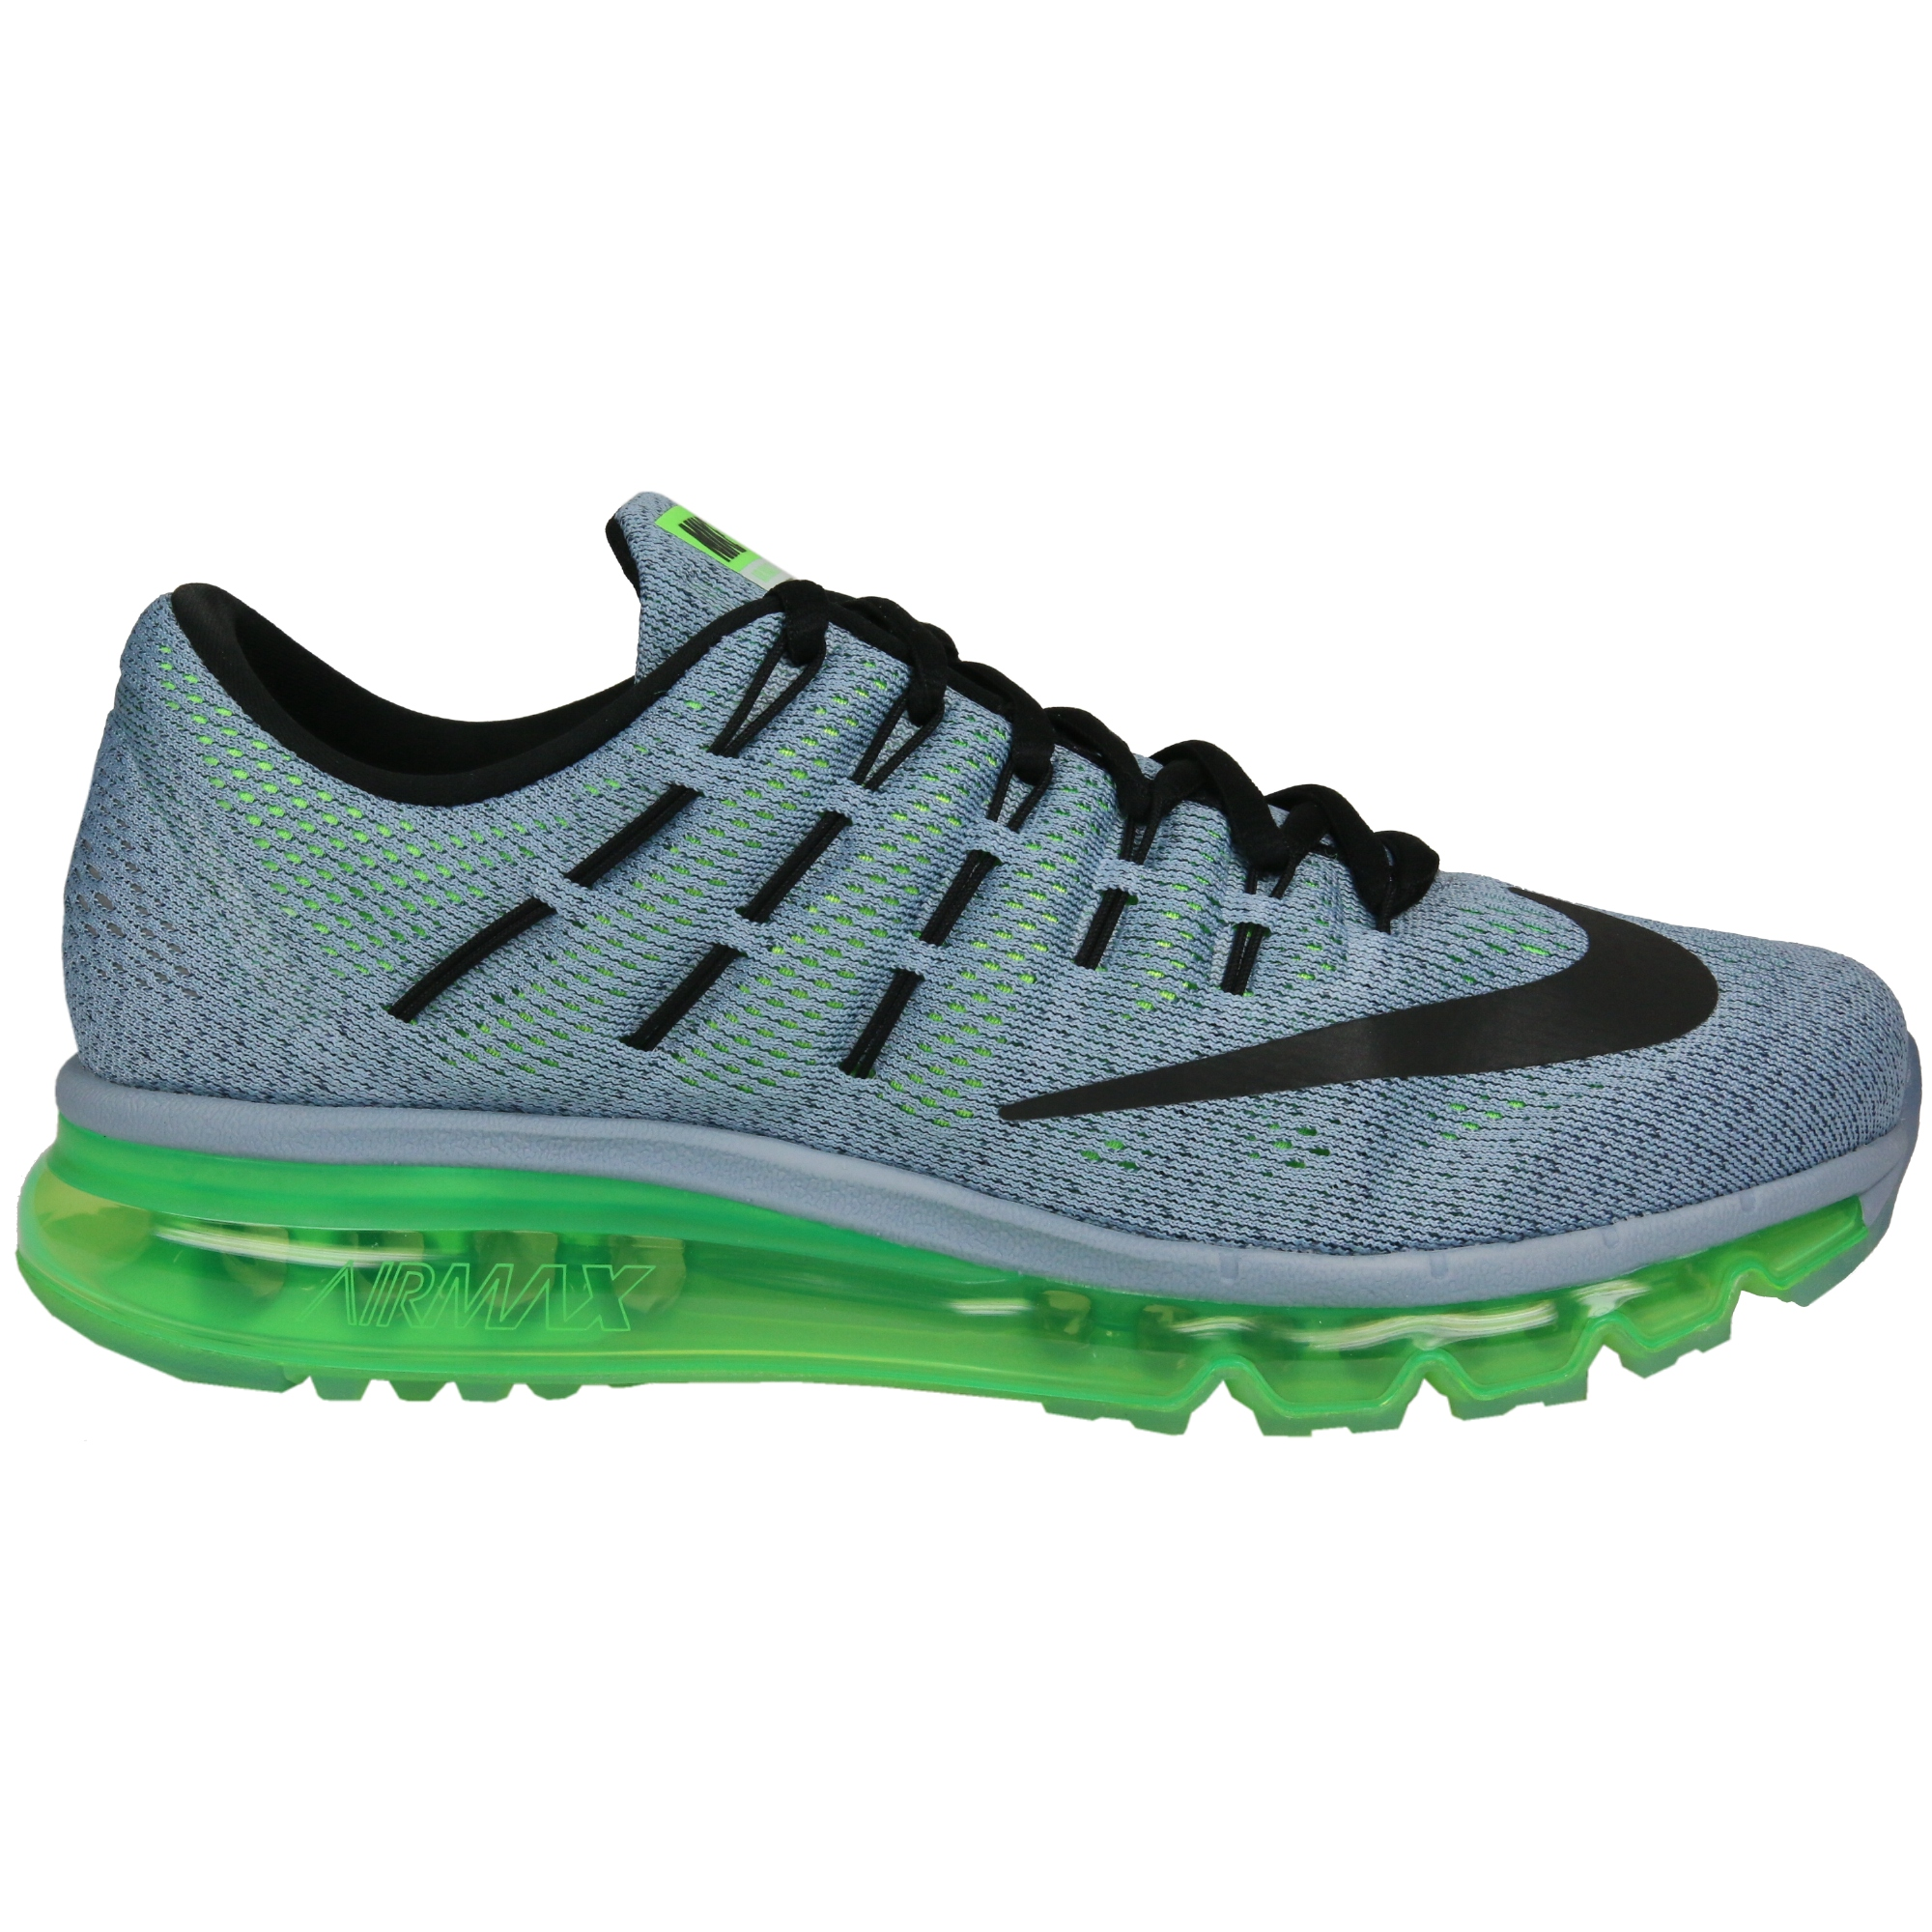 nike air max 2016 schuhe laufschuhe turnschuhe sneaker running herren 806771 ebay. Black Bedroom Furniture Sets. Home Design Ideas